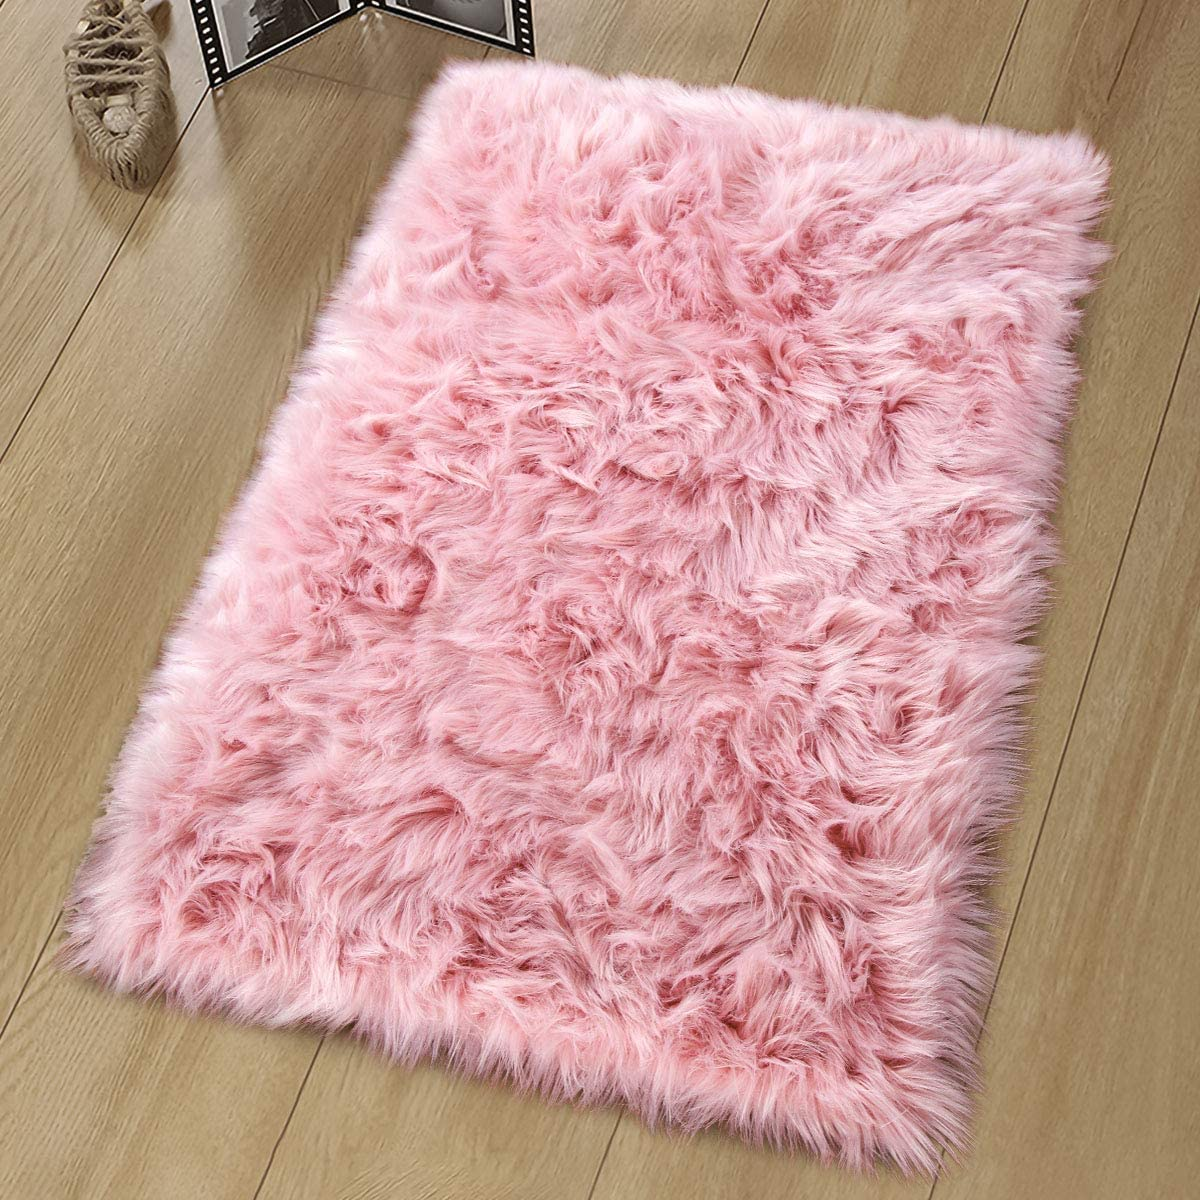 Noahas Luxury Fluffy Rugs Bedroom Furry Carpet Bedside Sheepskin Area Rugs Children Play Princess Room Decor Rug, 2ft x 3ft, Pink